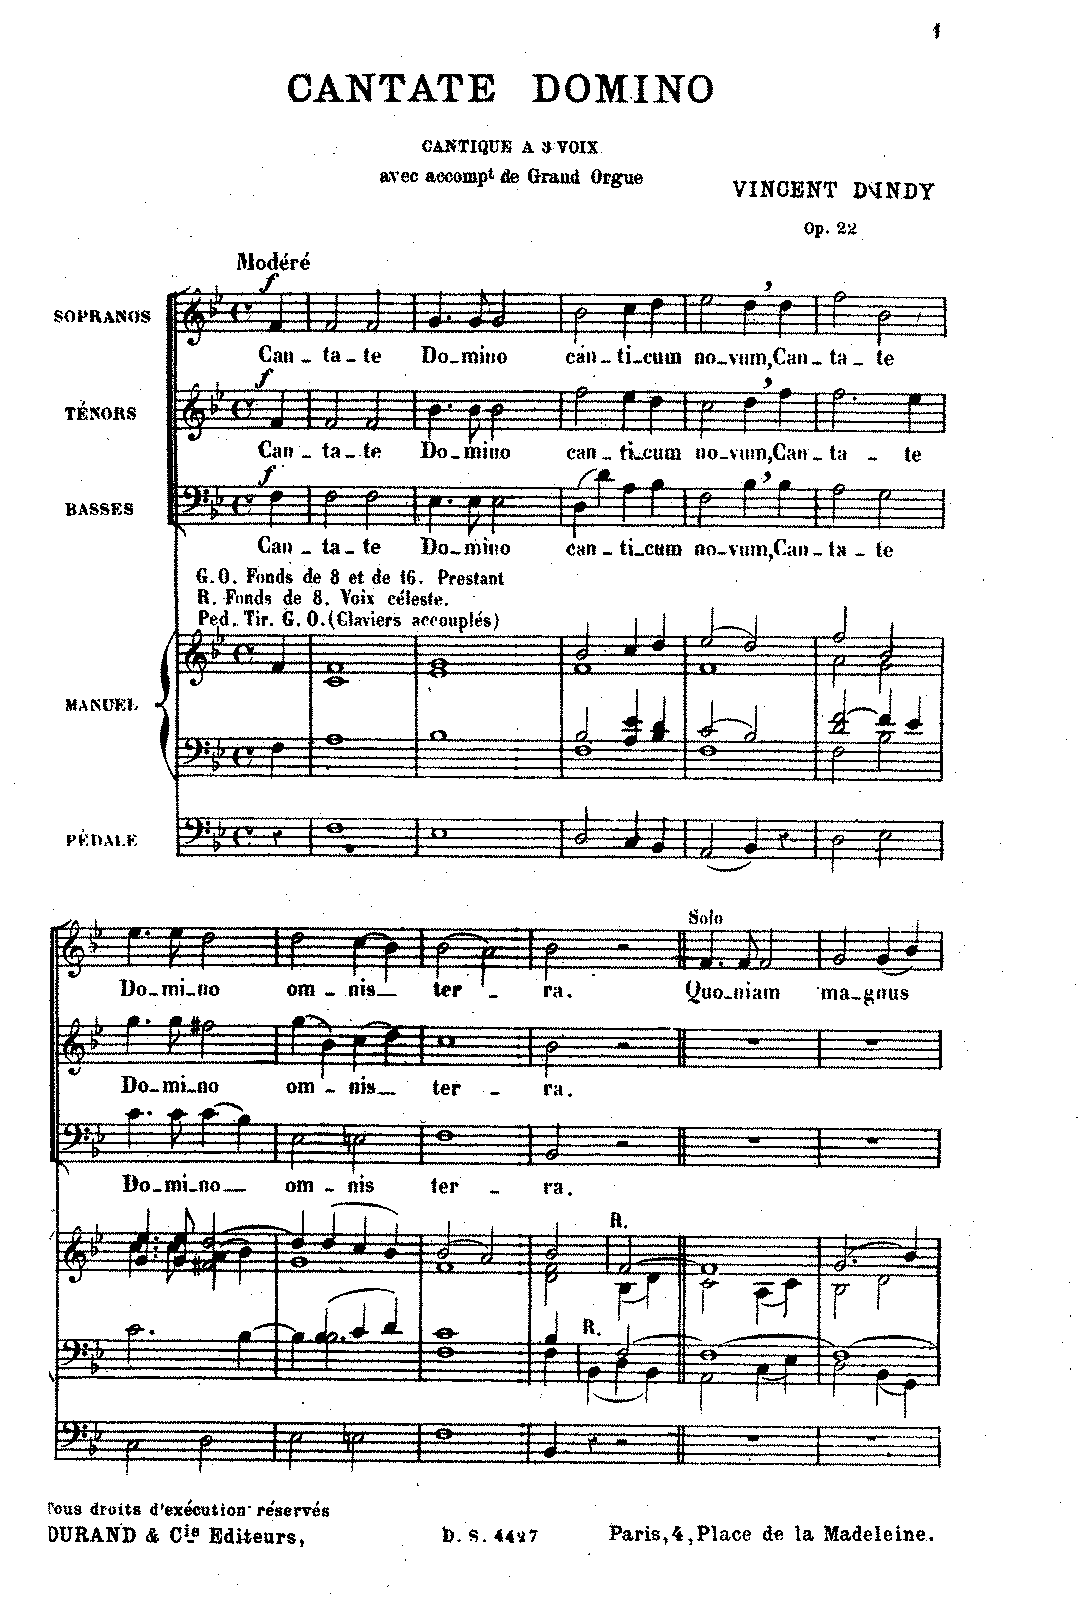 D'indy - Cantate Domino, Op. 22.pdf